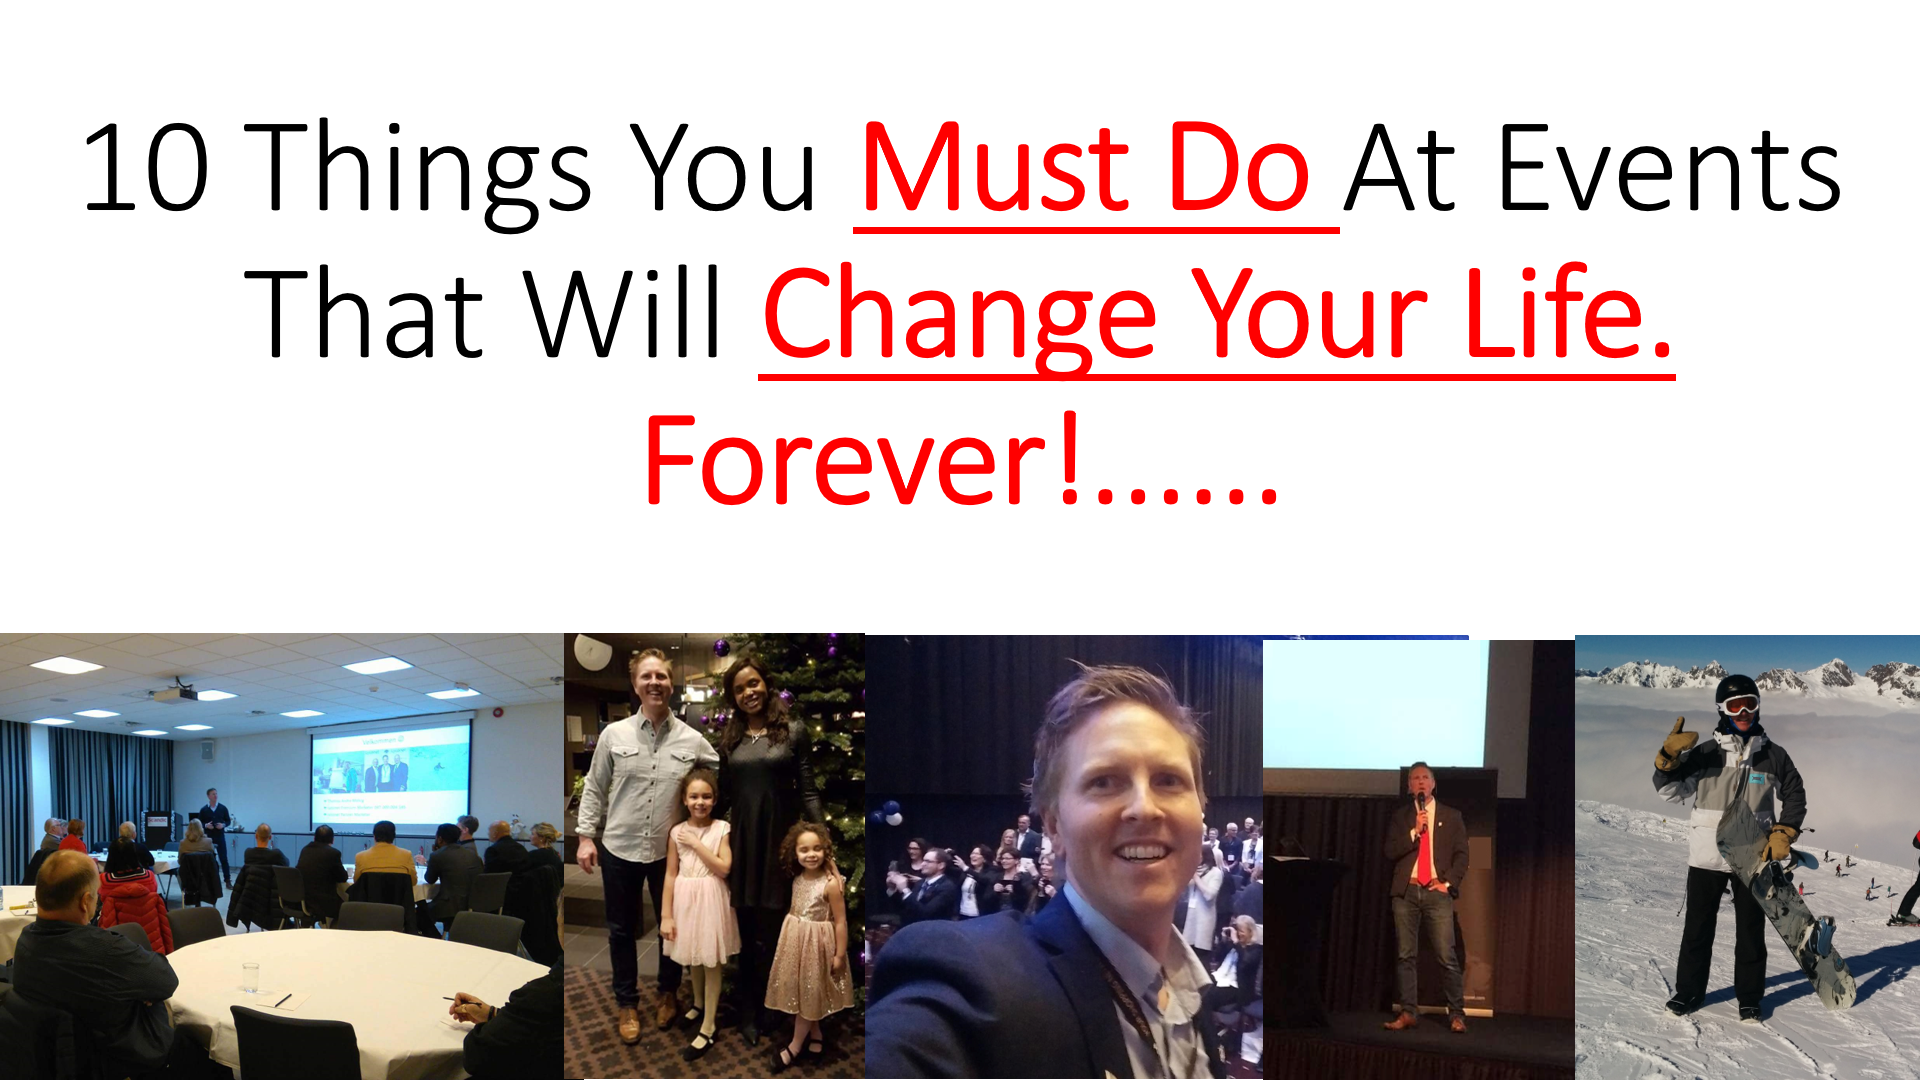 10 Things You Must Do At Network Marketing Events That Will Change Your Life Forever